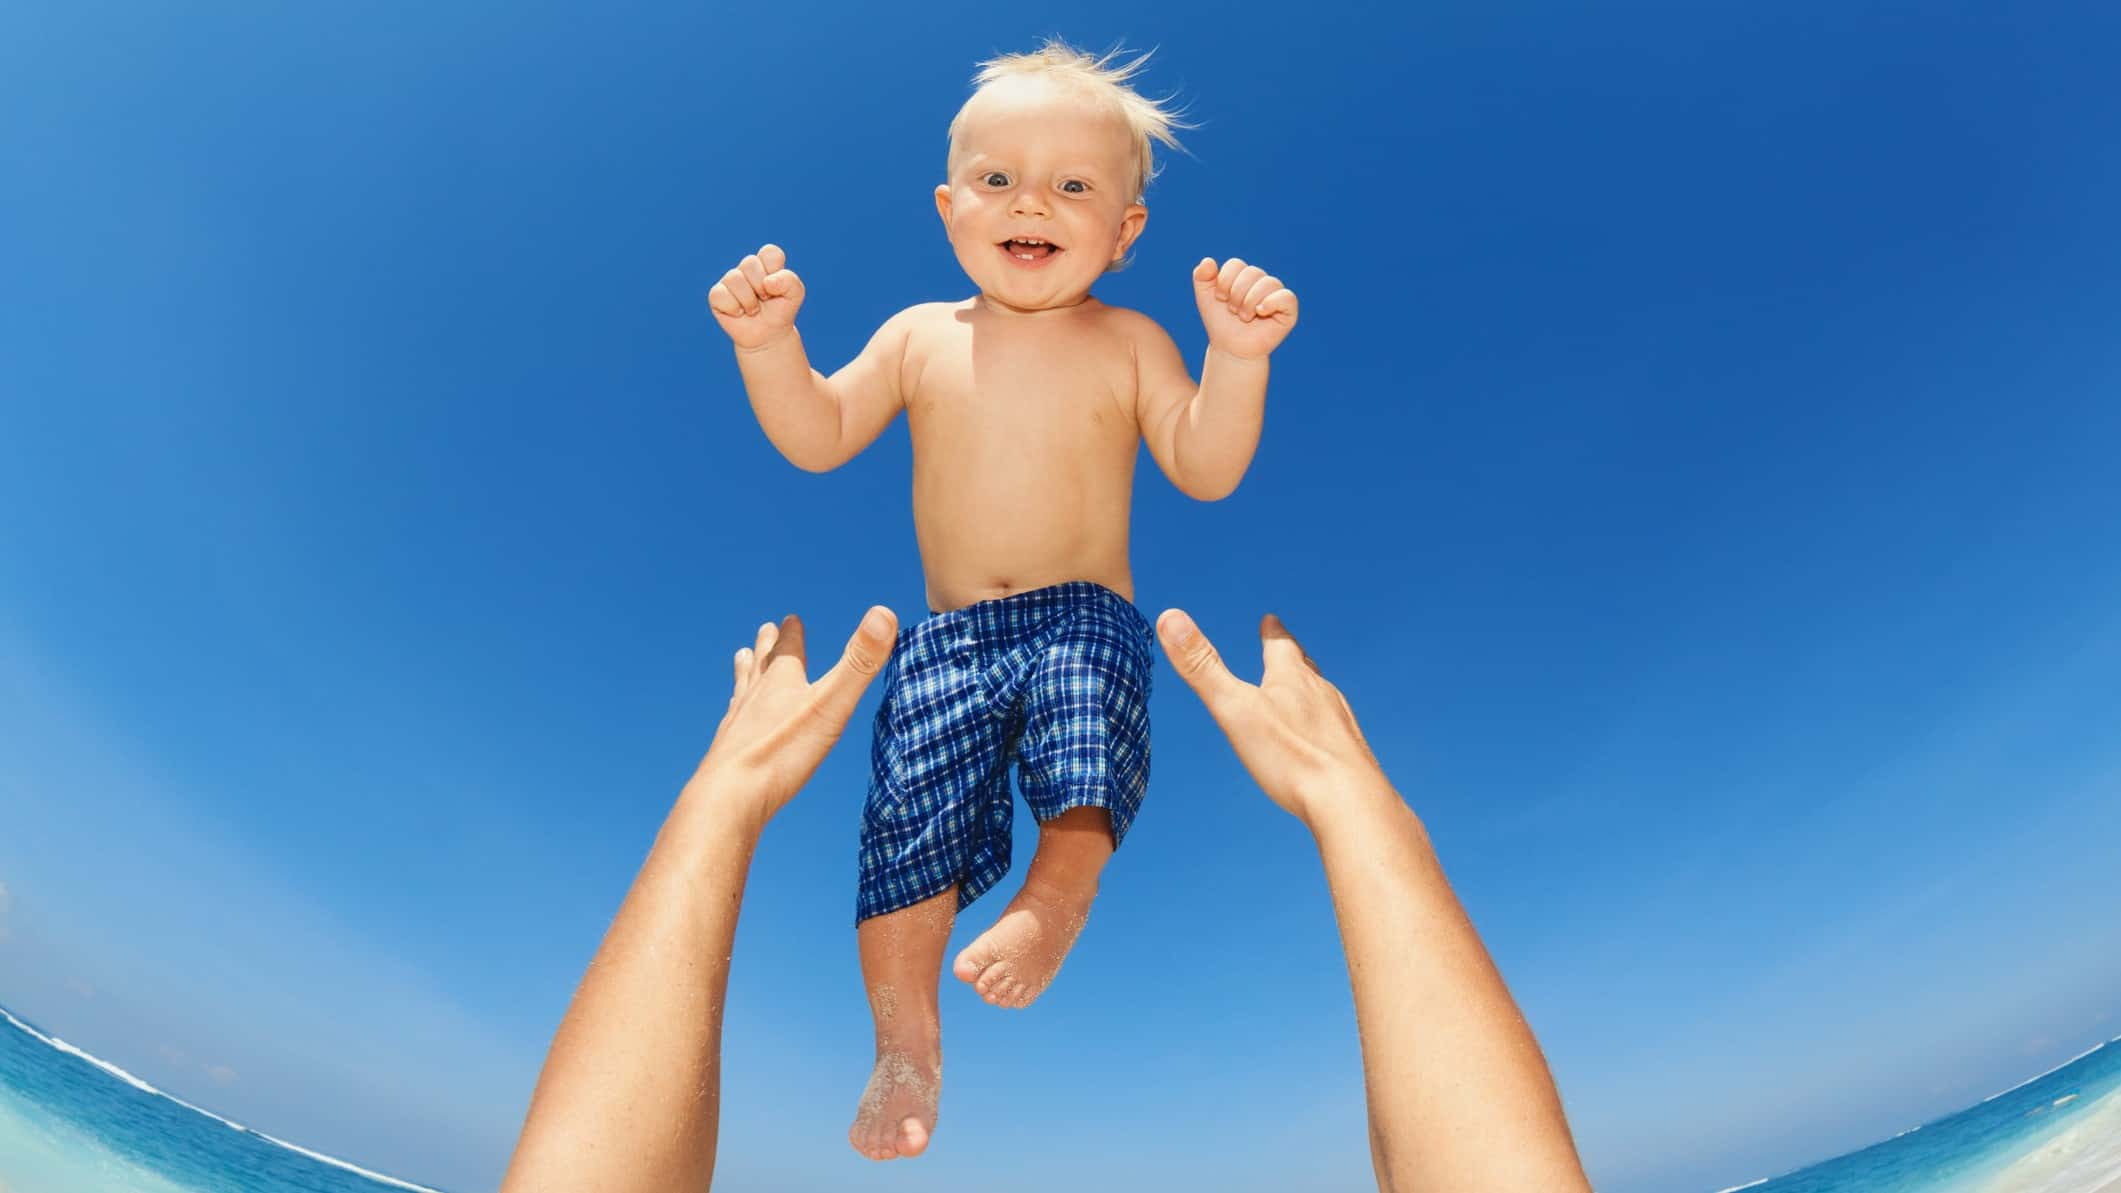 hands throwing smiling baby up in the air representing rising asx share price